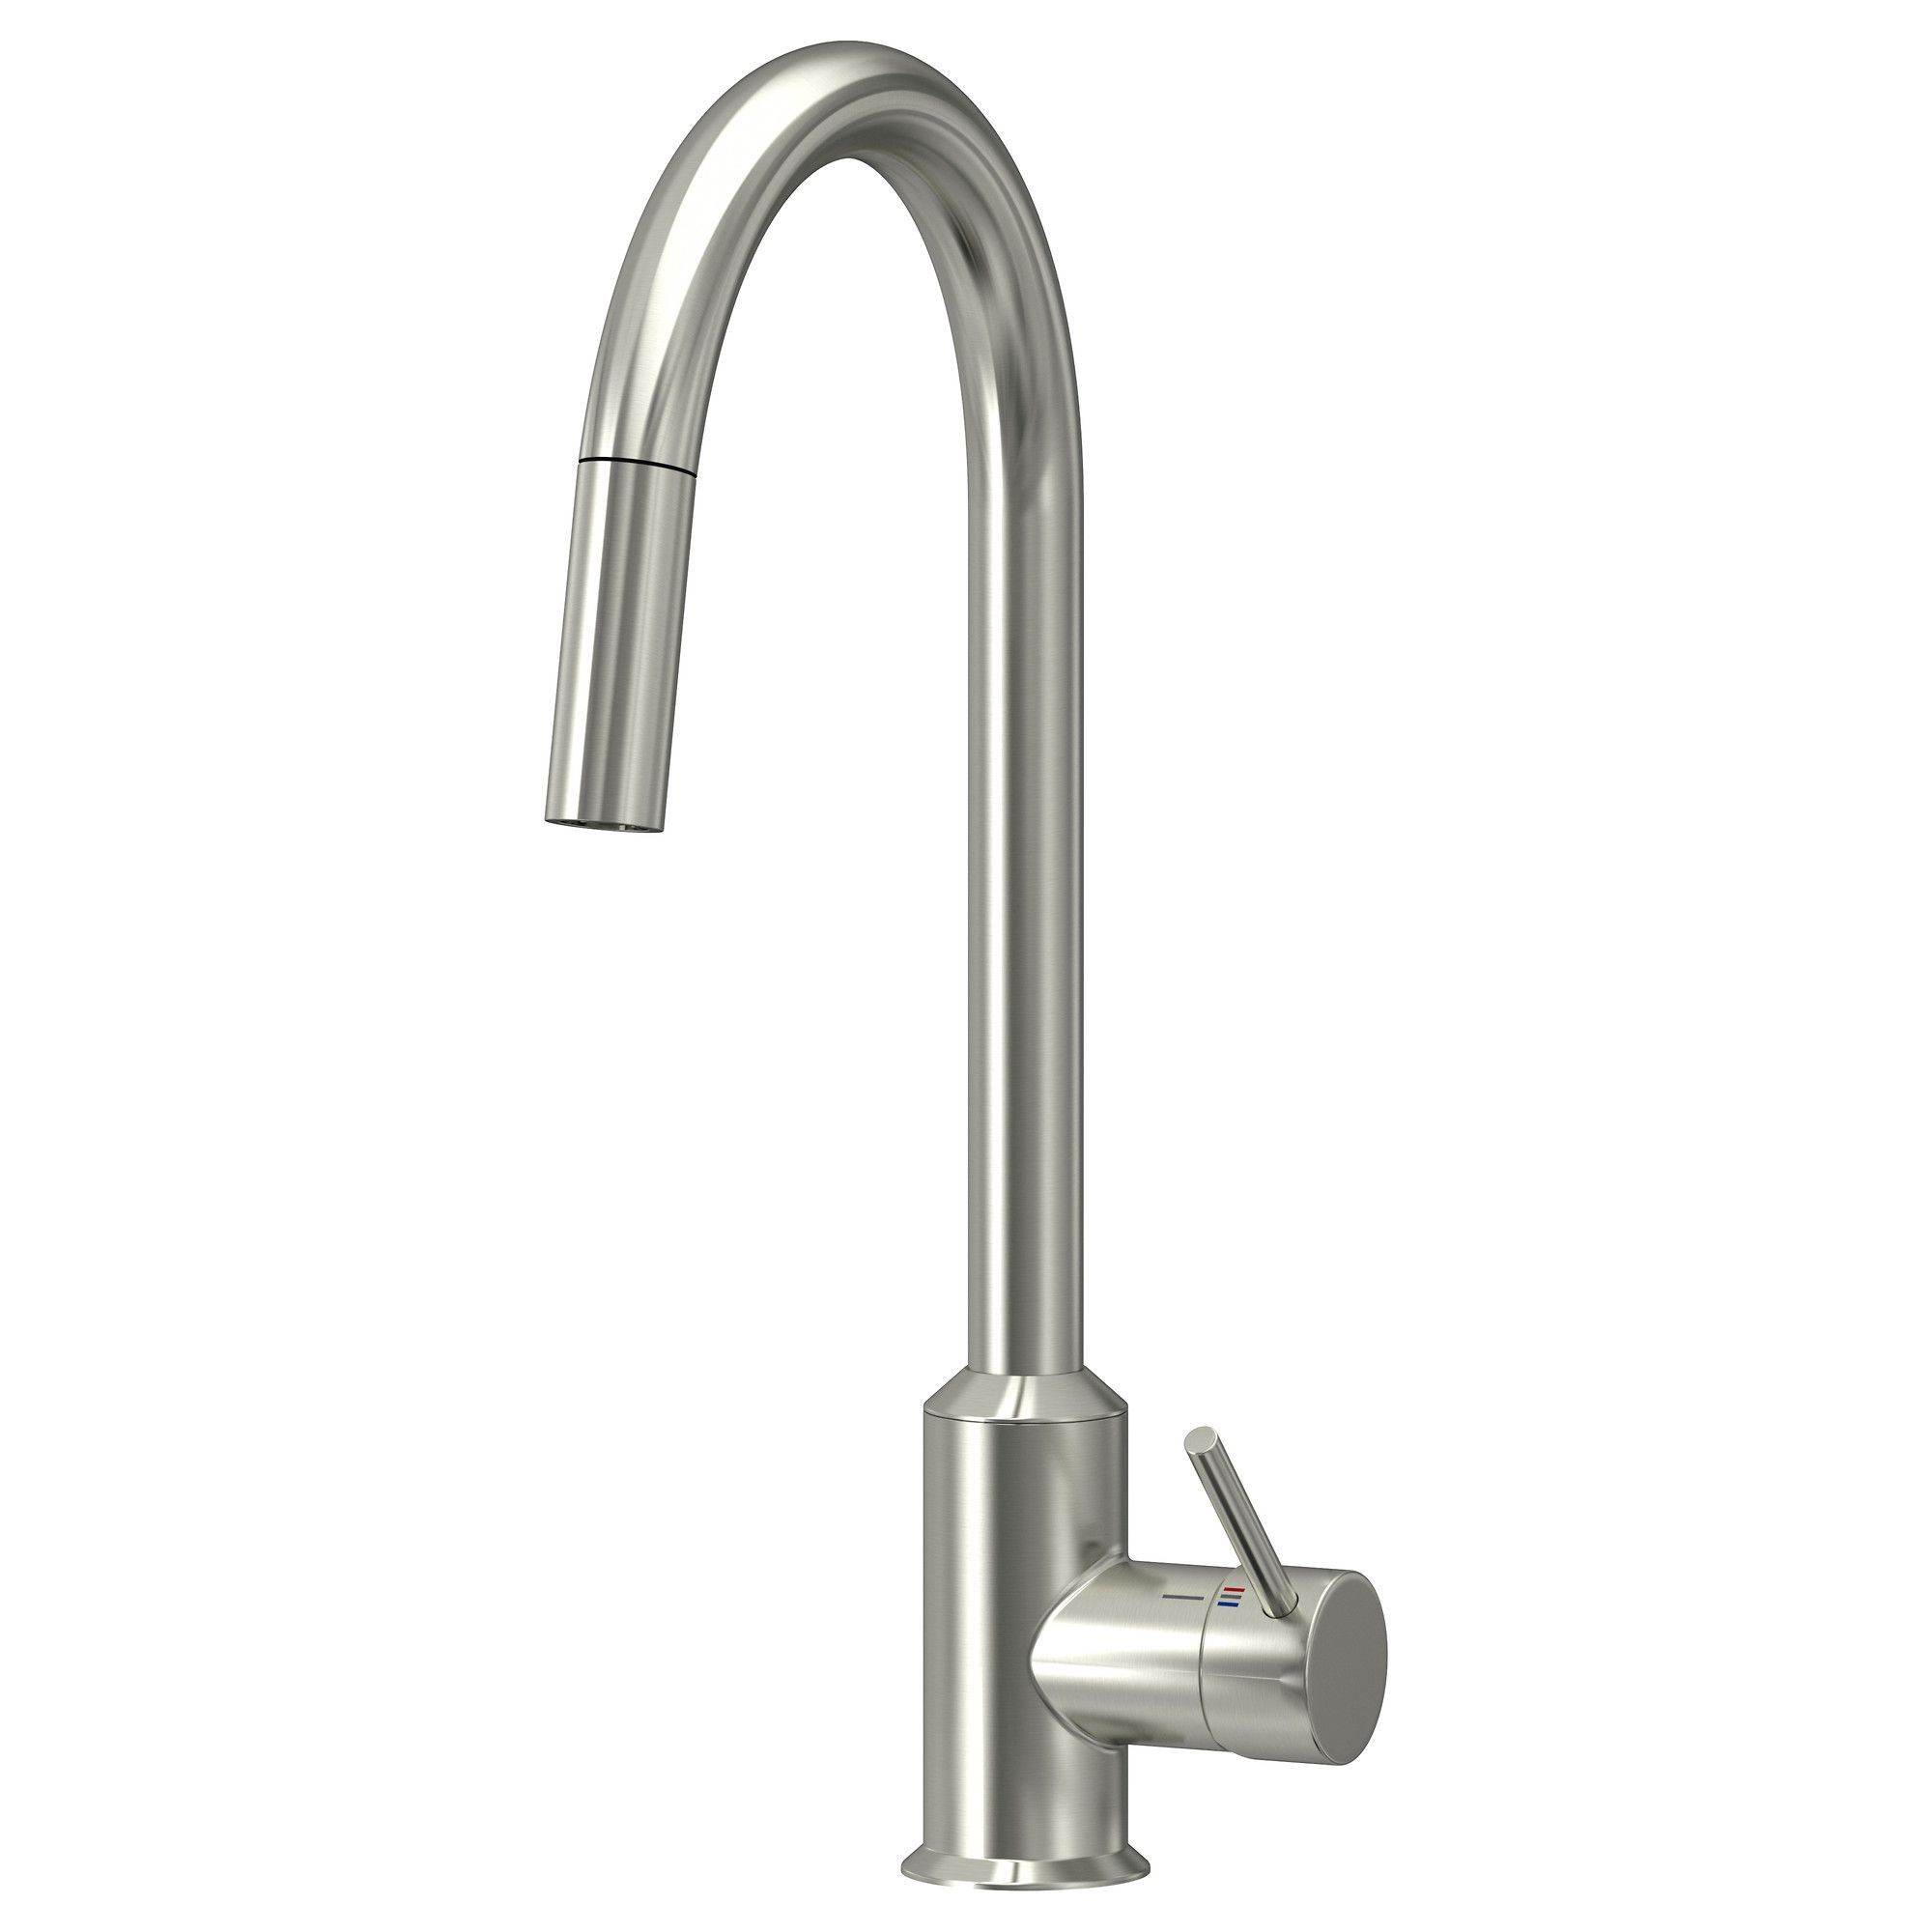 curitiba spray right the kitchen pull down deck gold sink and faucet fresh with sprayer faucets choosing sinks mounted beautiful of stainless finish size full steel